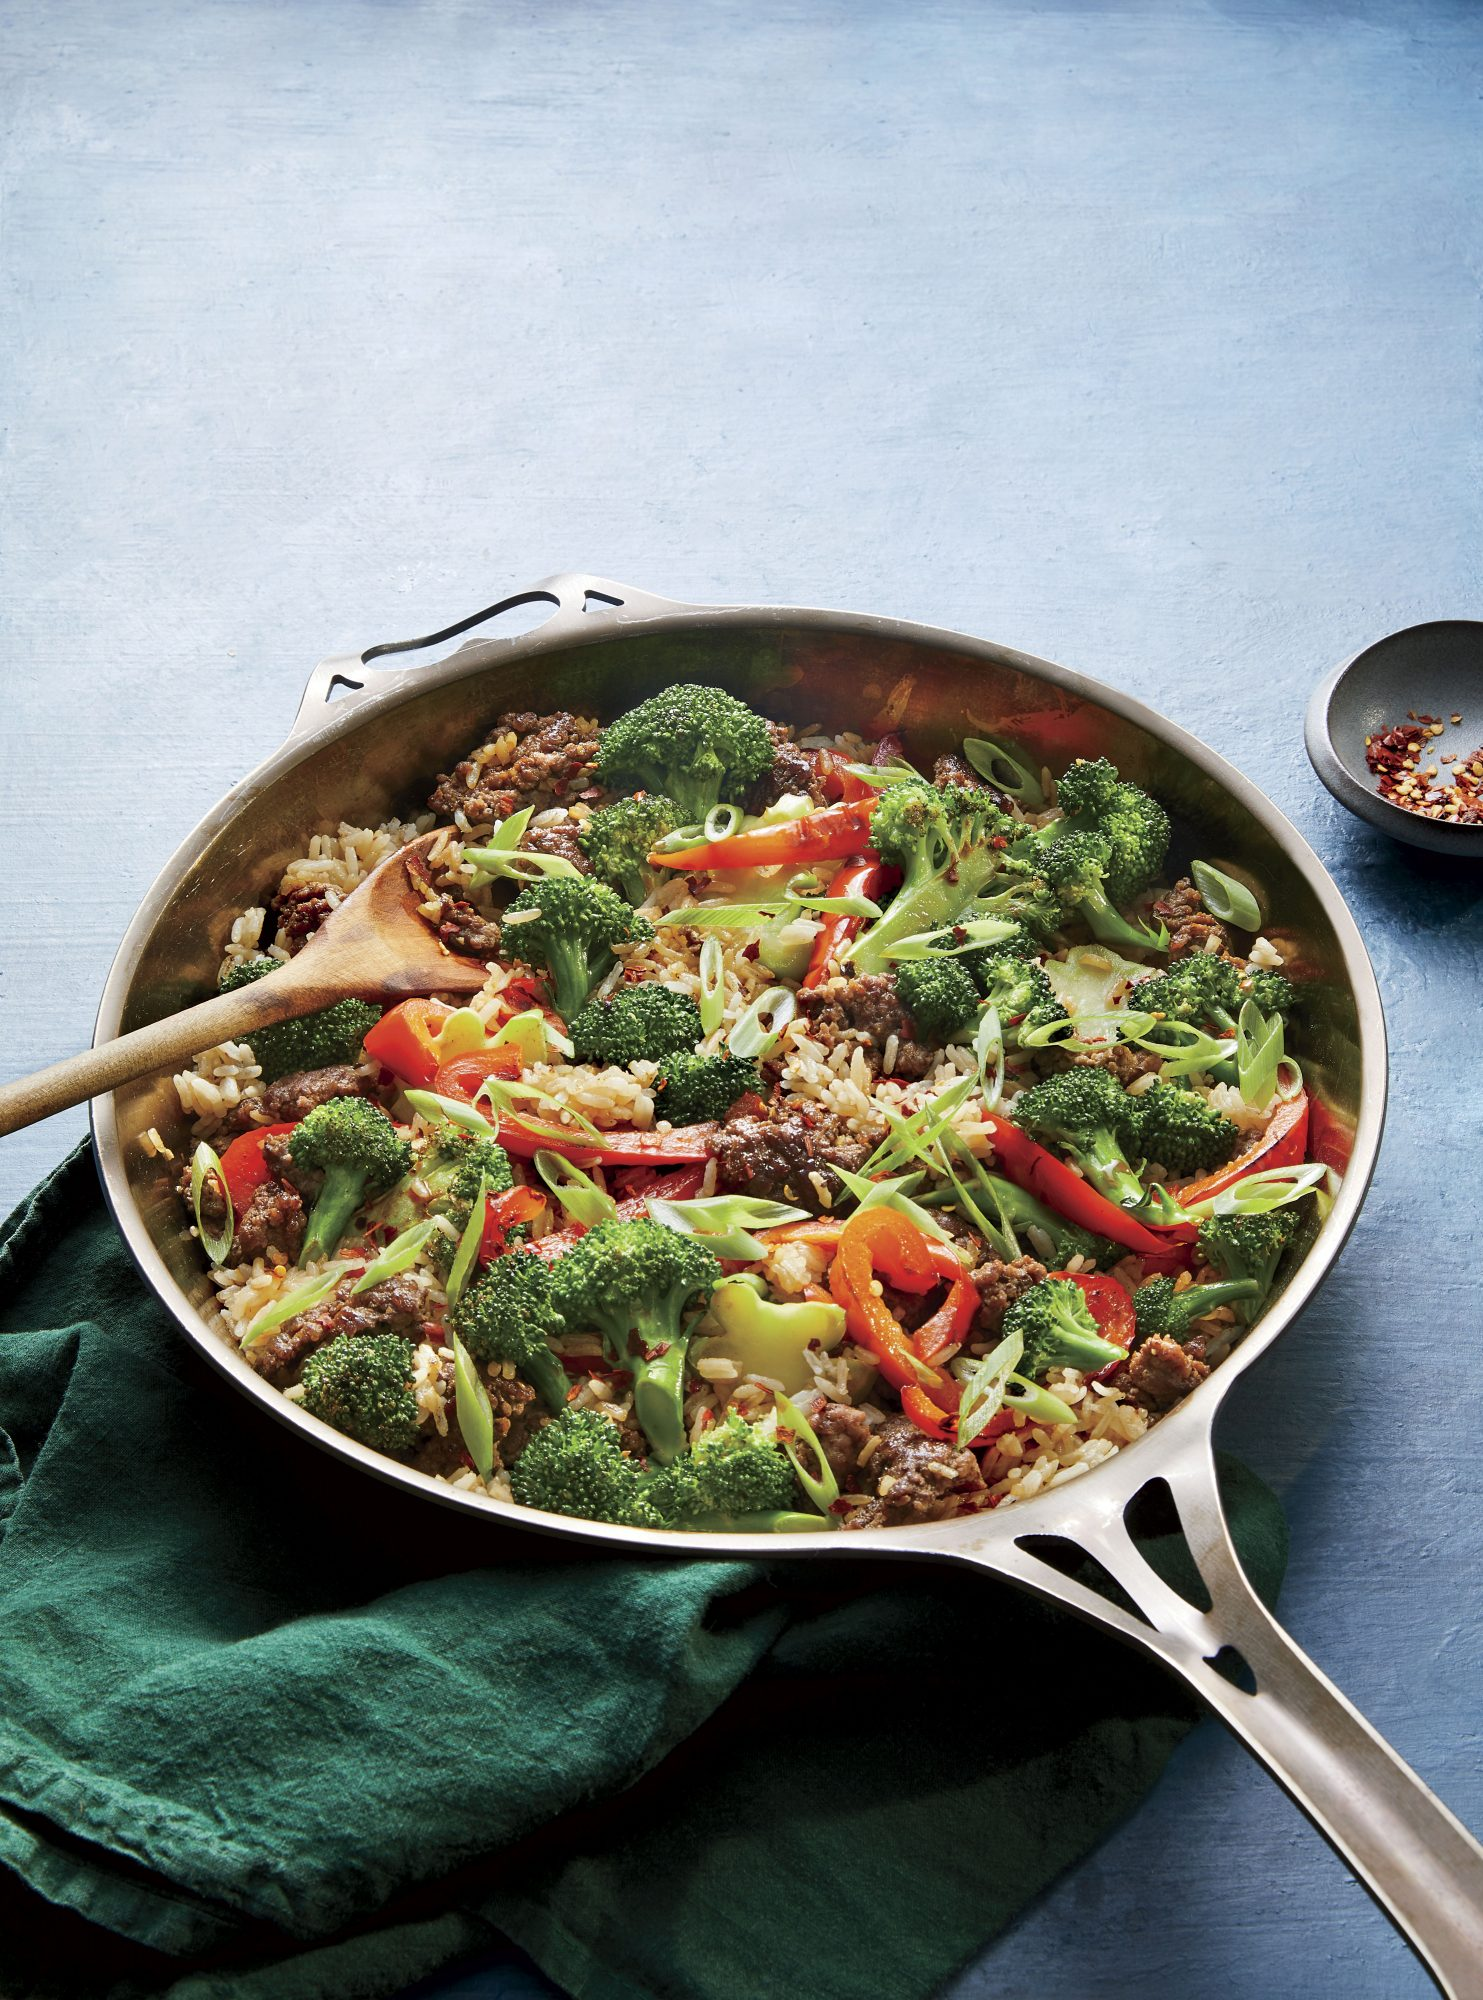 Easy Beef And Broccoli Stir Fry Recipe Southern Living